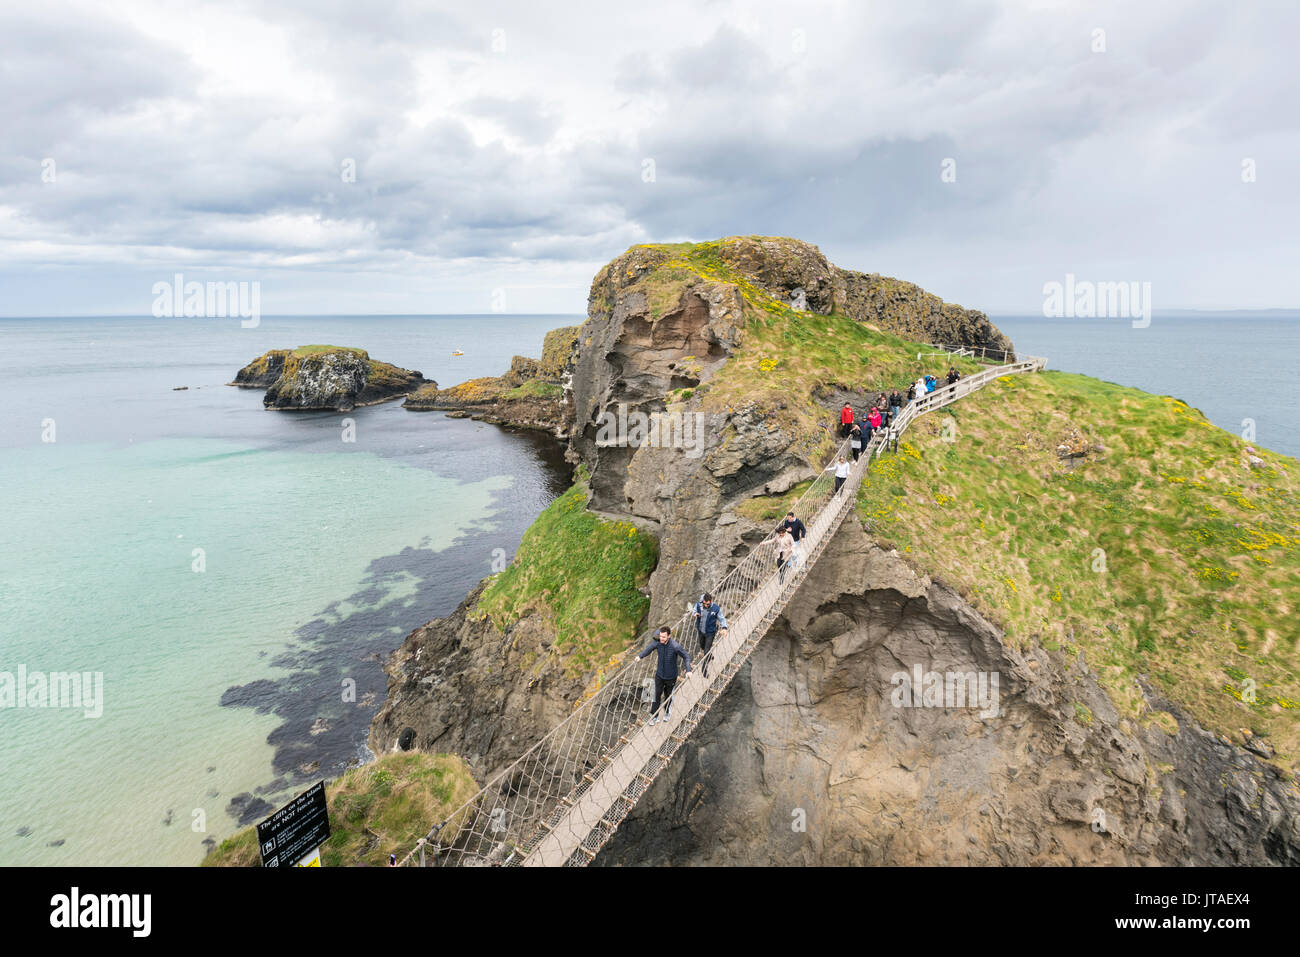 View of the Carrick a Rede Rope Bridge, Ballintoy, Ballycastle, County Antrim, Ulster, Northern Ireland, United Kingdom, Europe - Stock Image